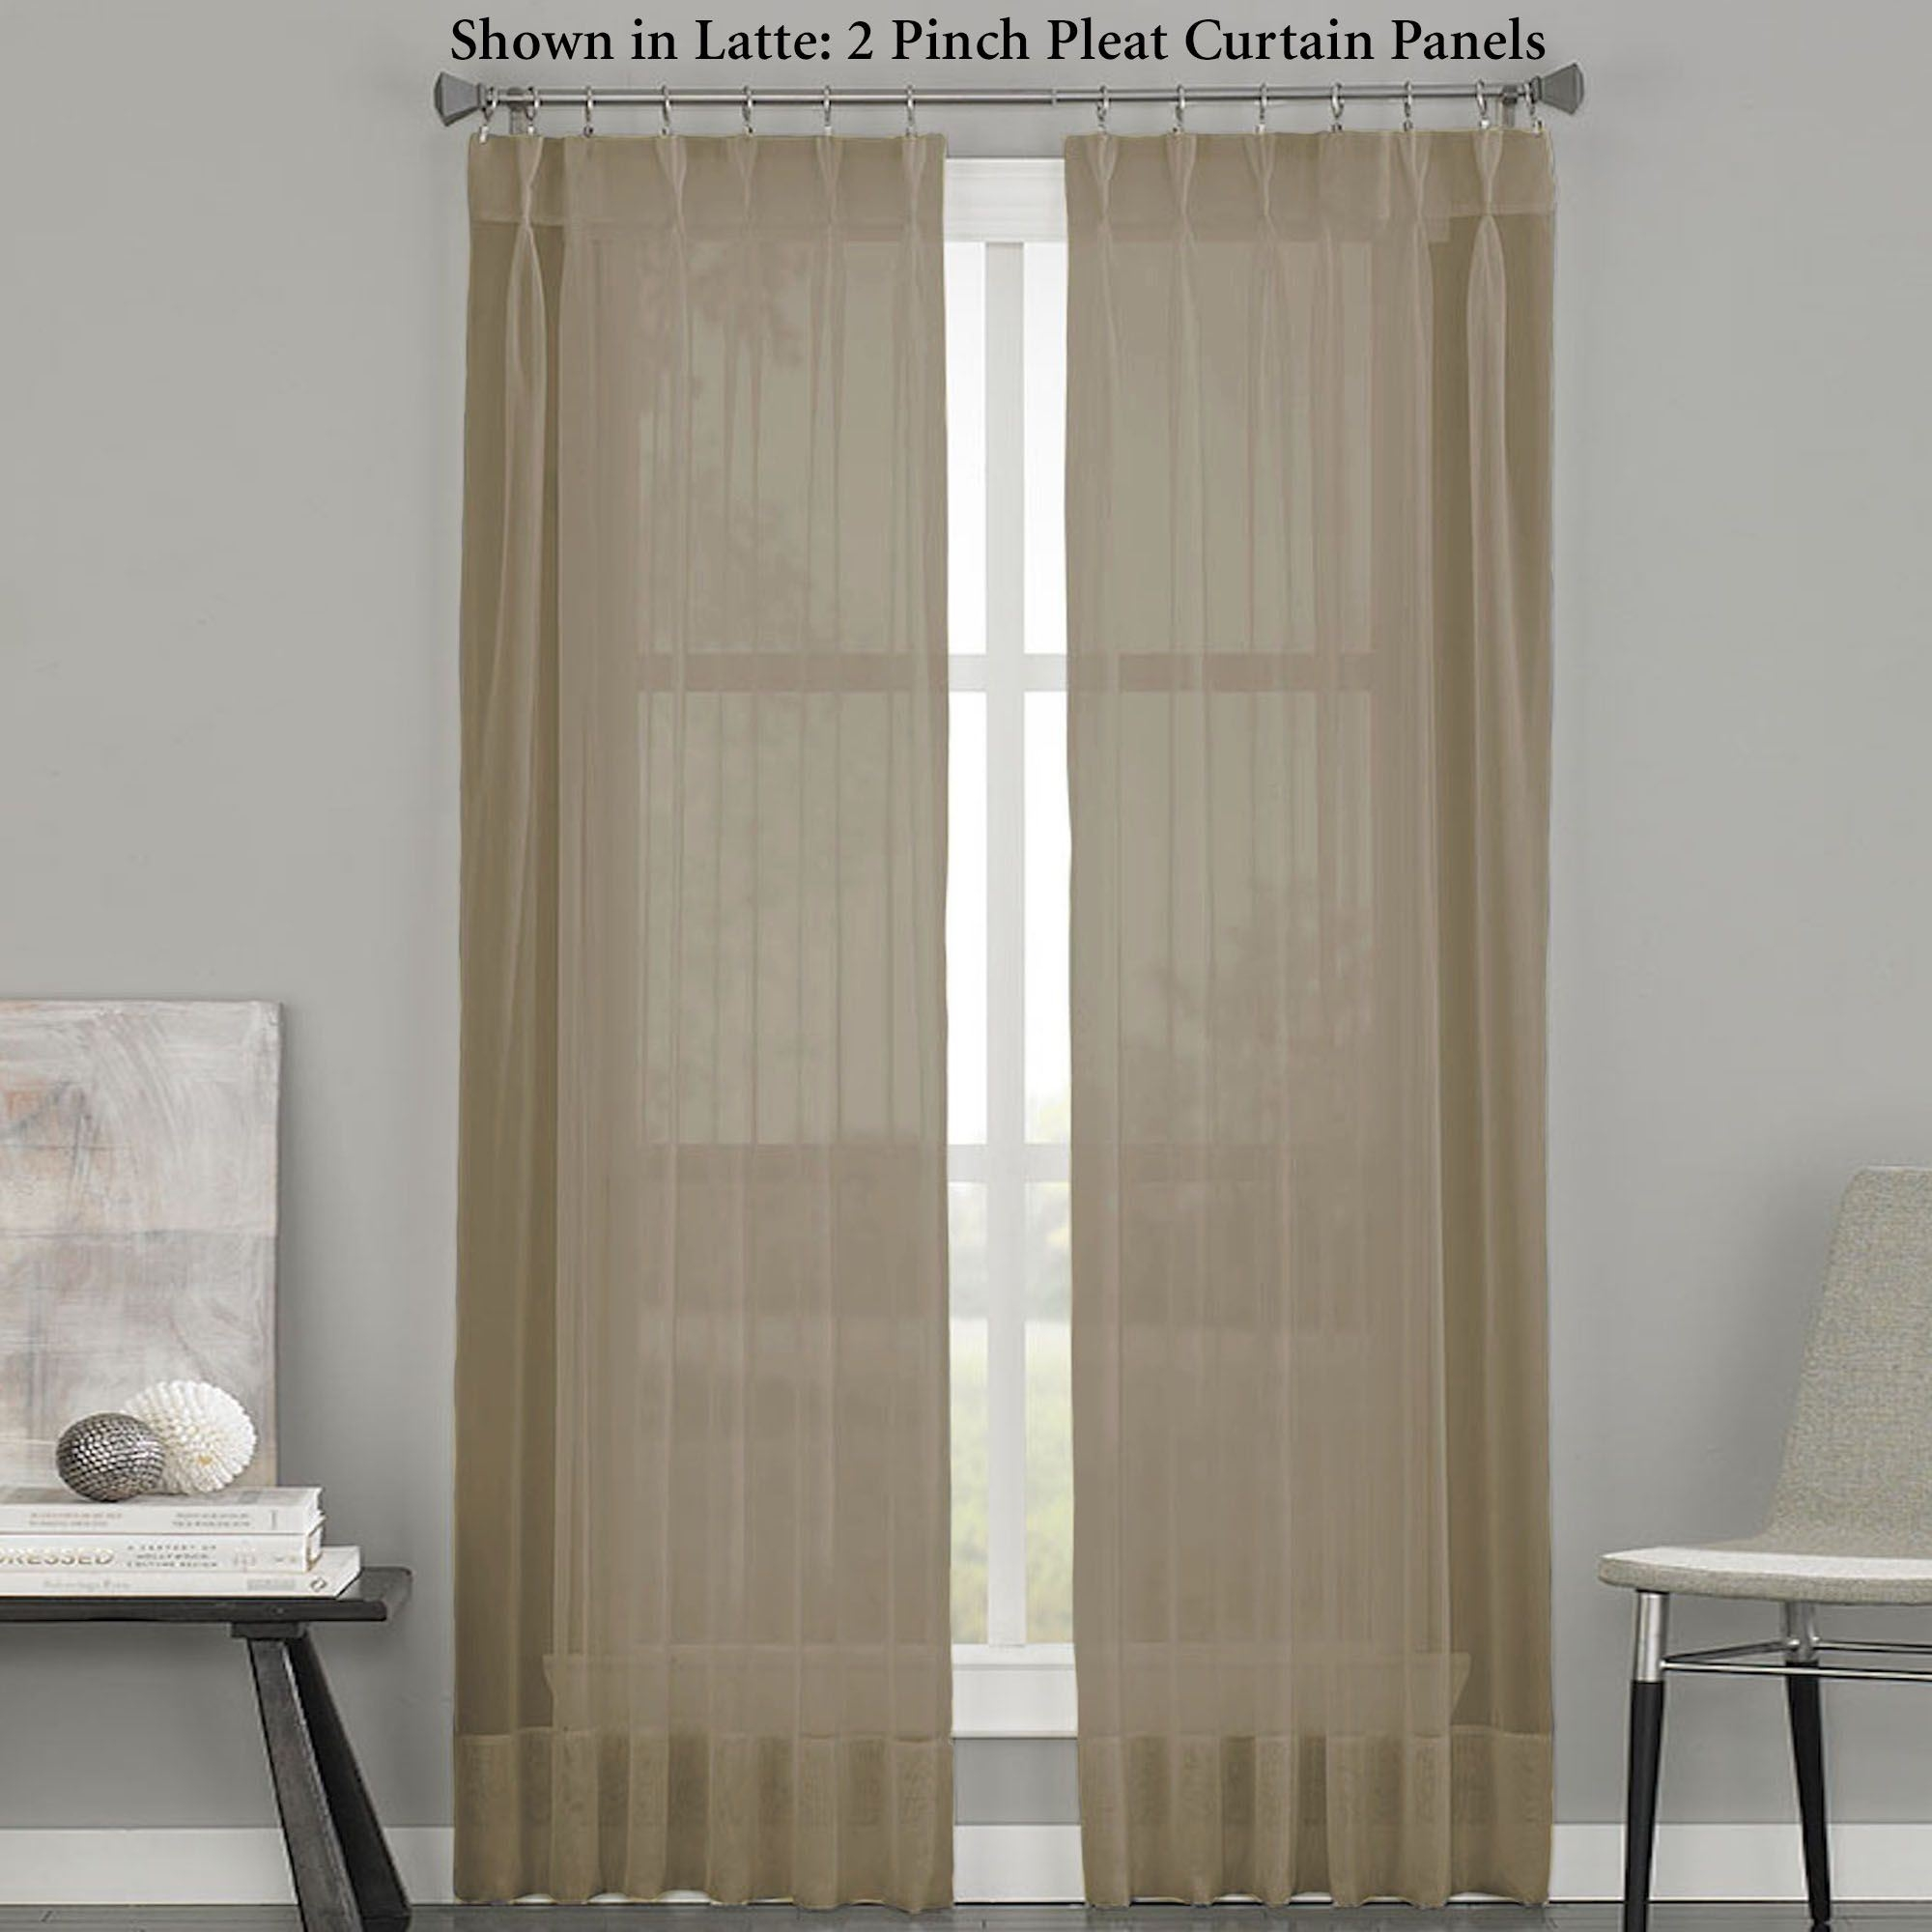 Patio Door Curtain Panels Touch Of Class Within 54 Inch Long Curtain Panels (View 24 of 25)